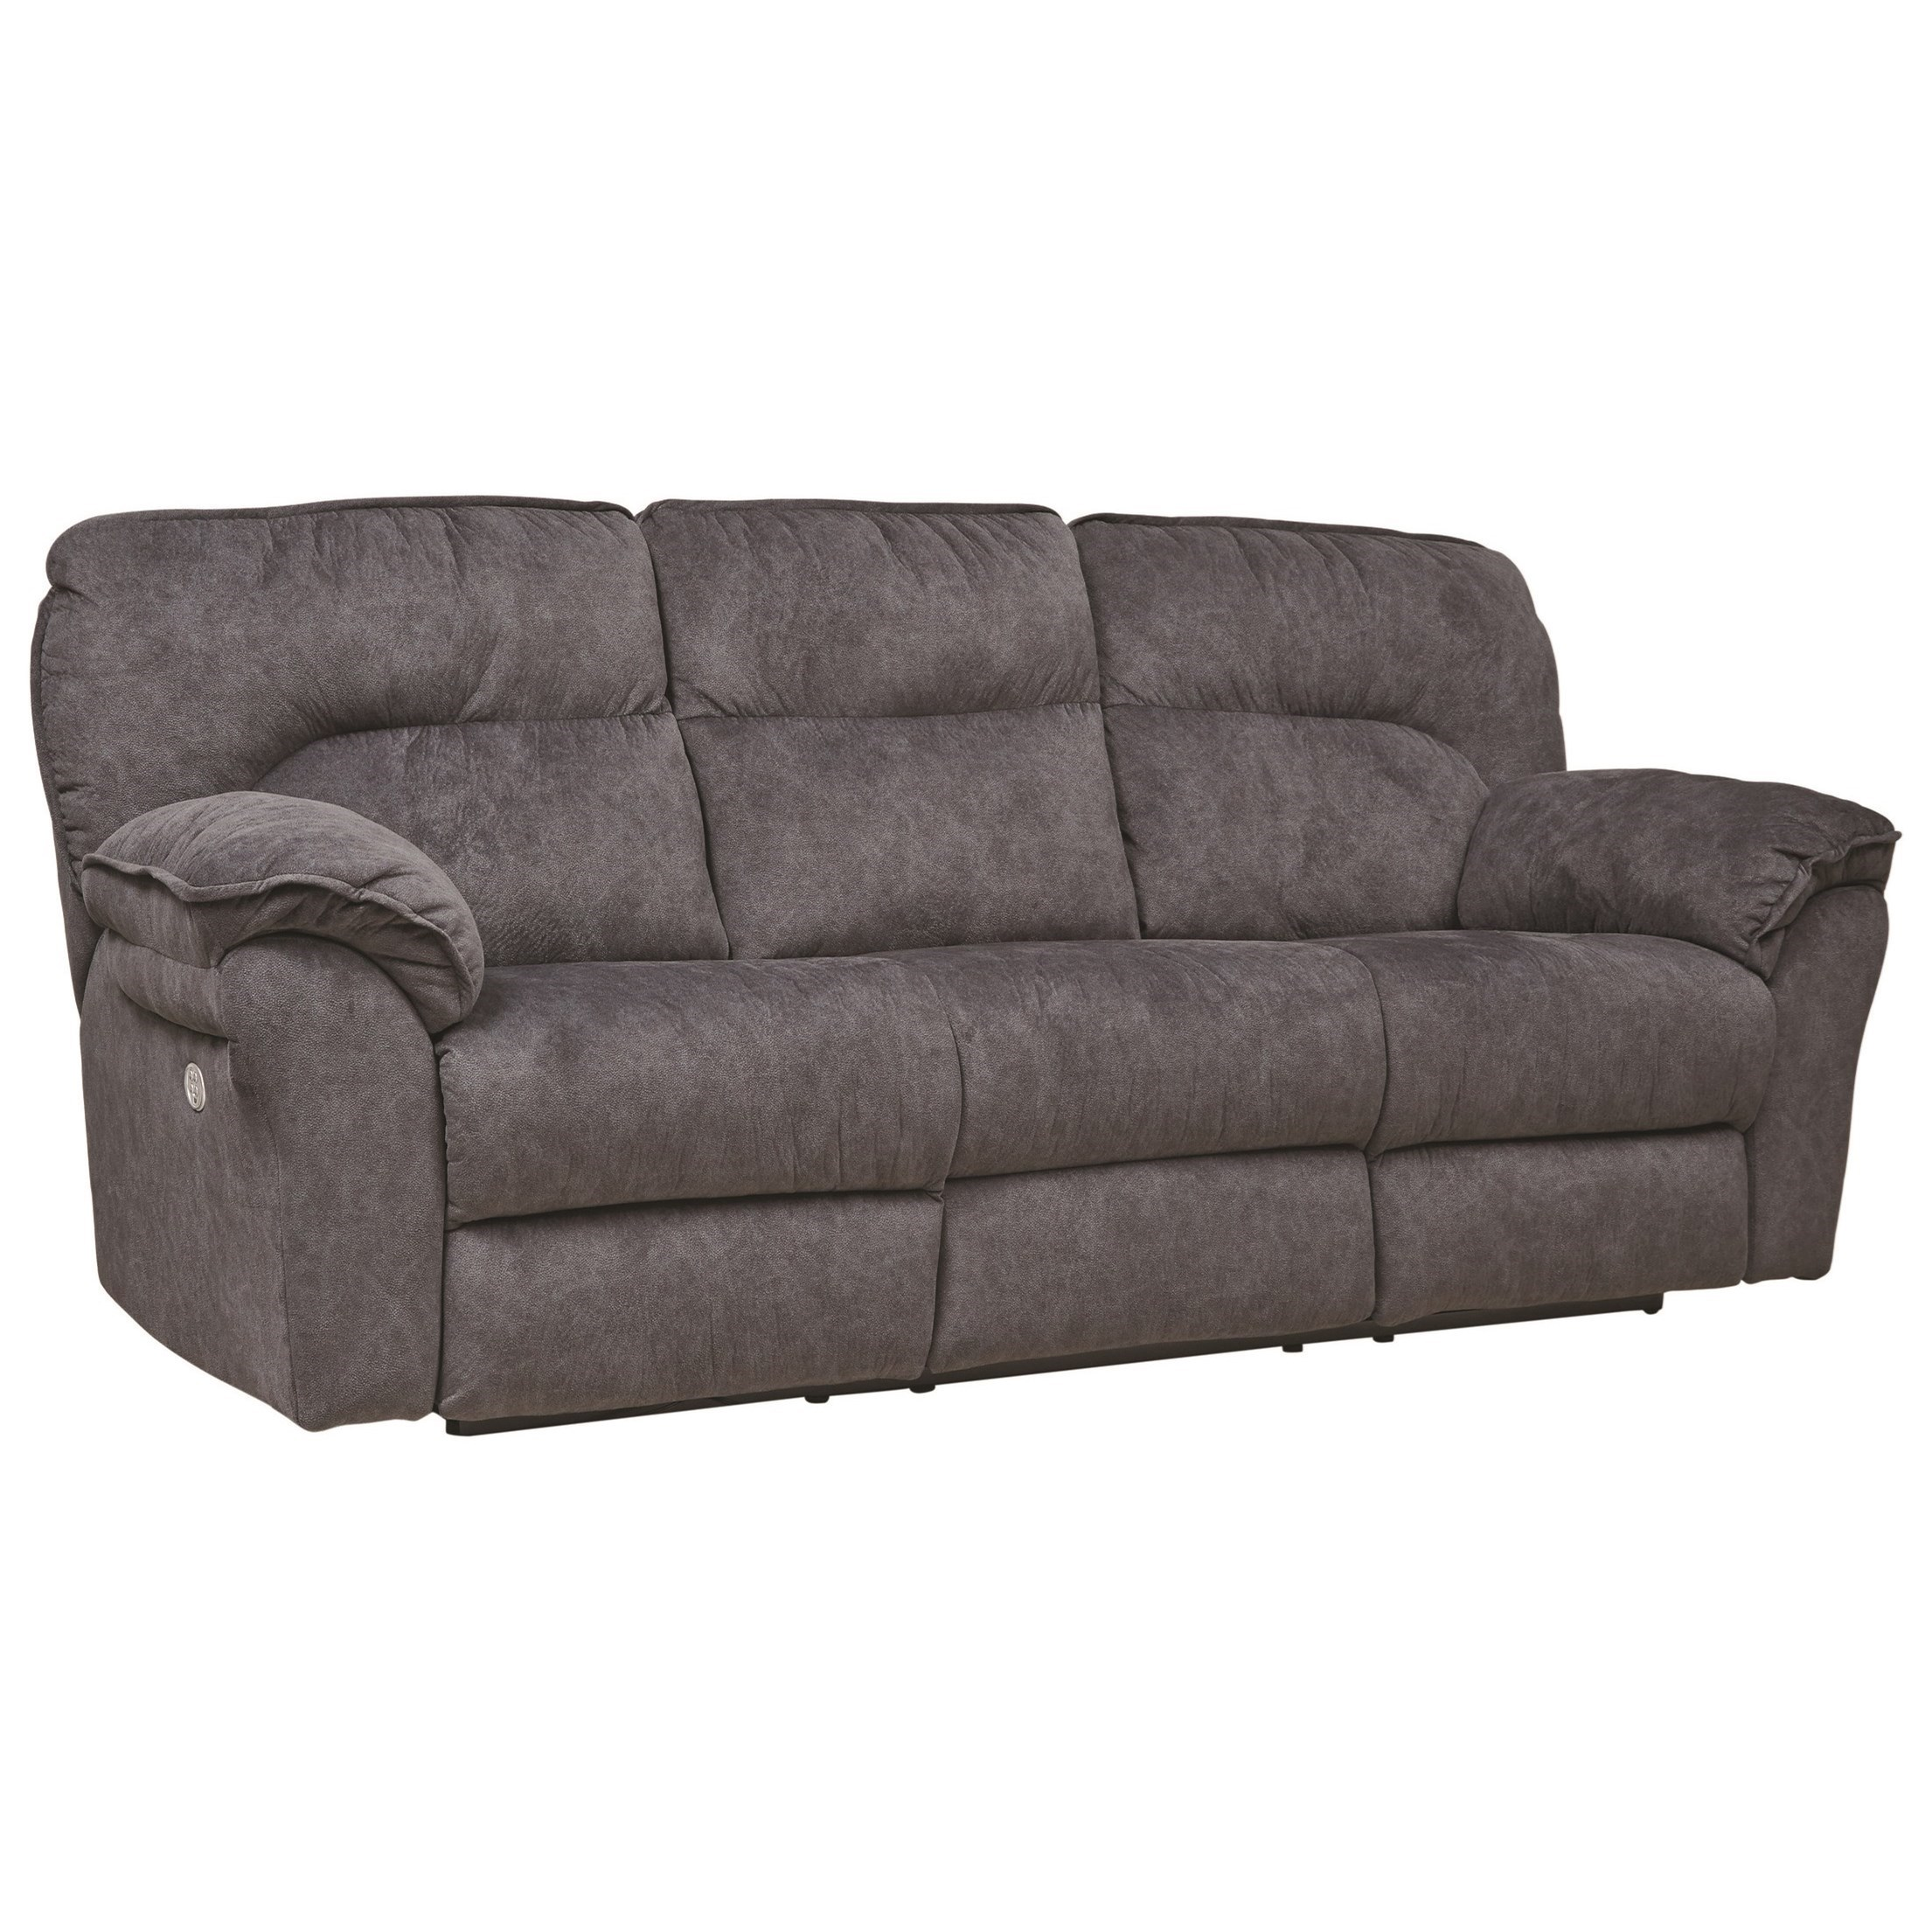 Southern Motion Full Ride 763 63p Casual Power Headrest Double Reclining Sofa With Dropdown Table Hudson S Furniture Reclining Sofas